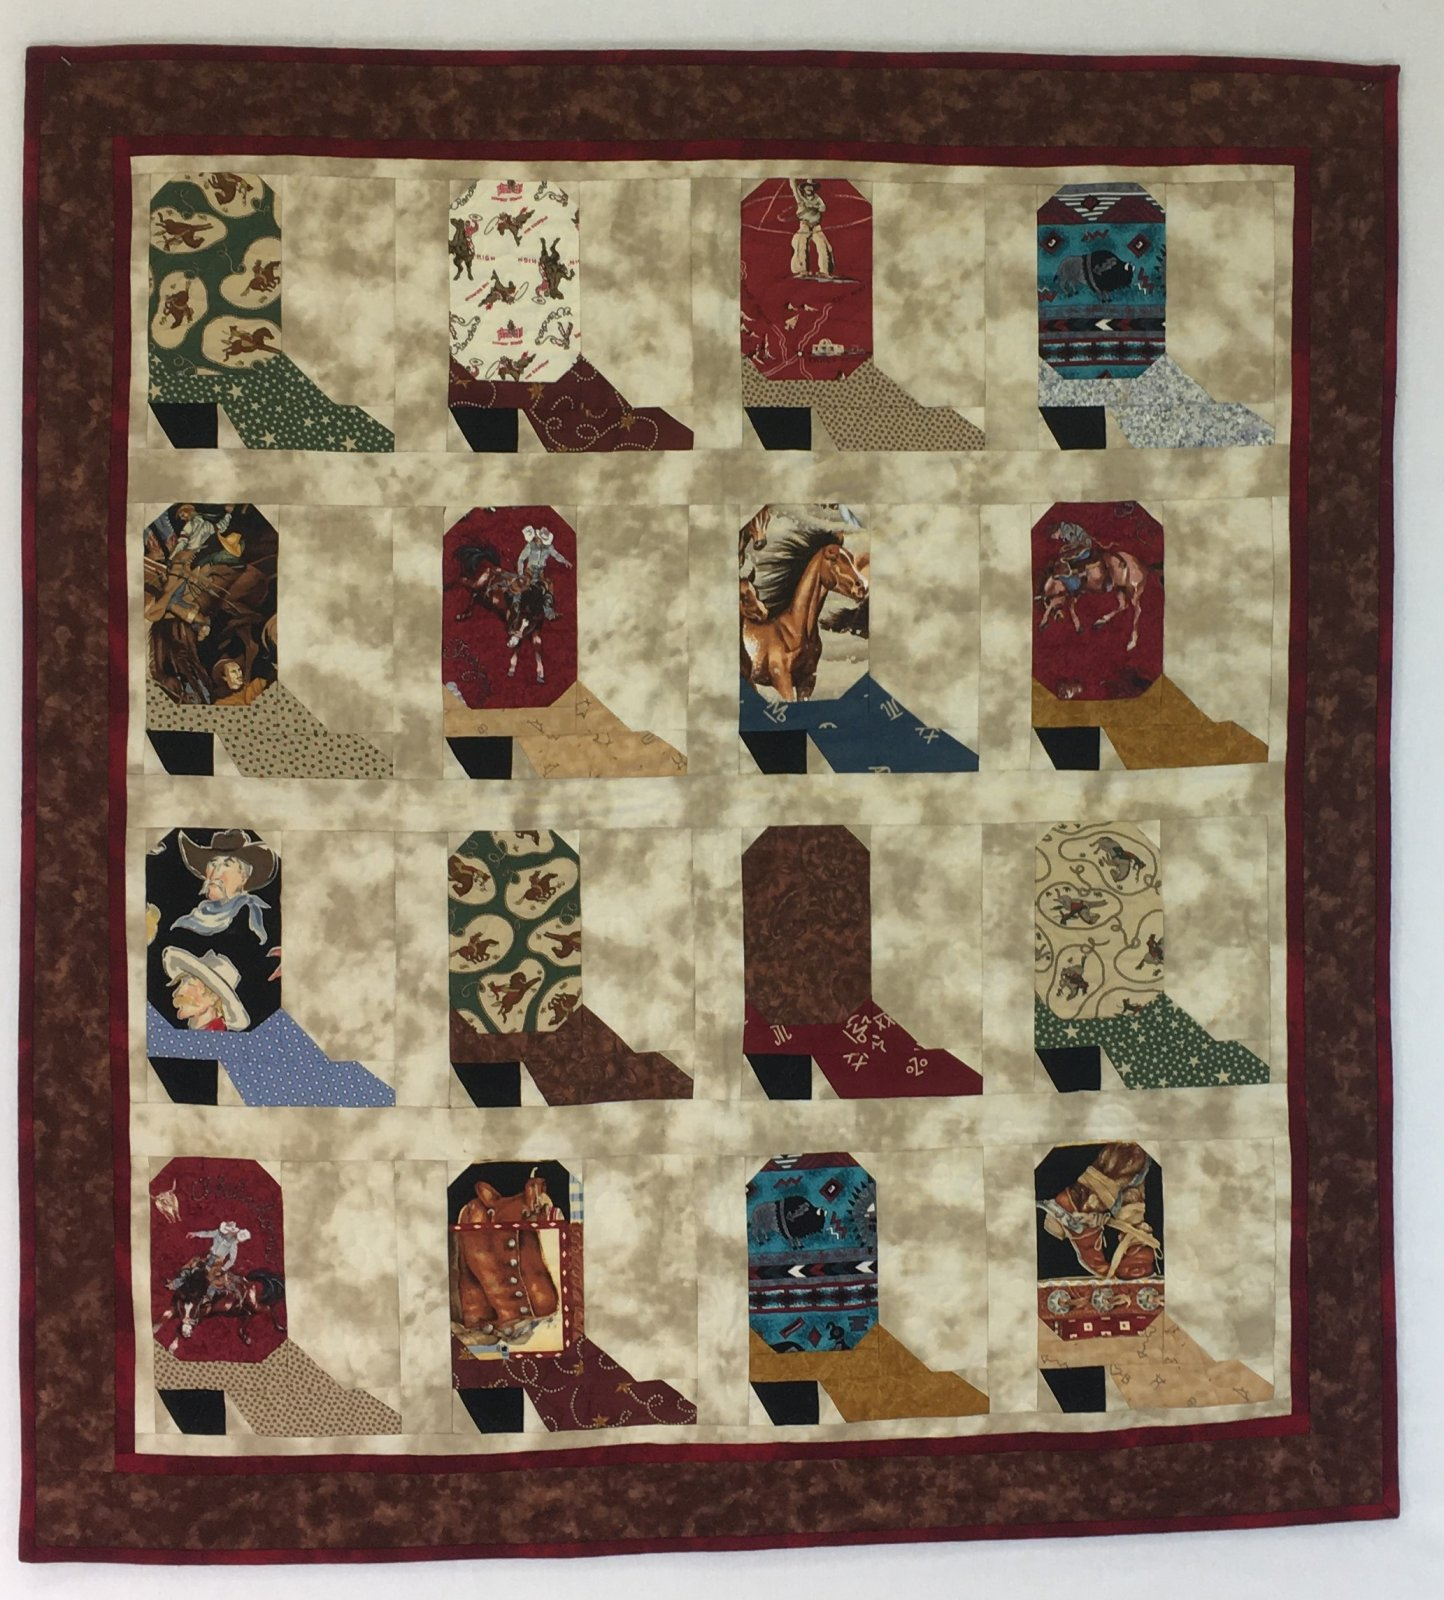 Cowboy Boots Quilt/ Wall Hanging Handmade